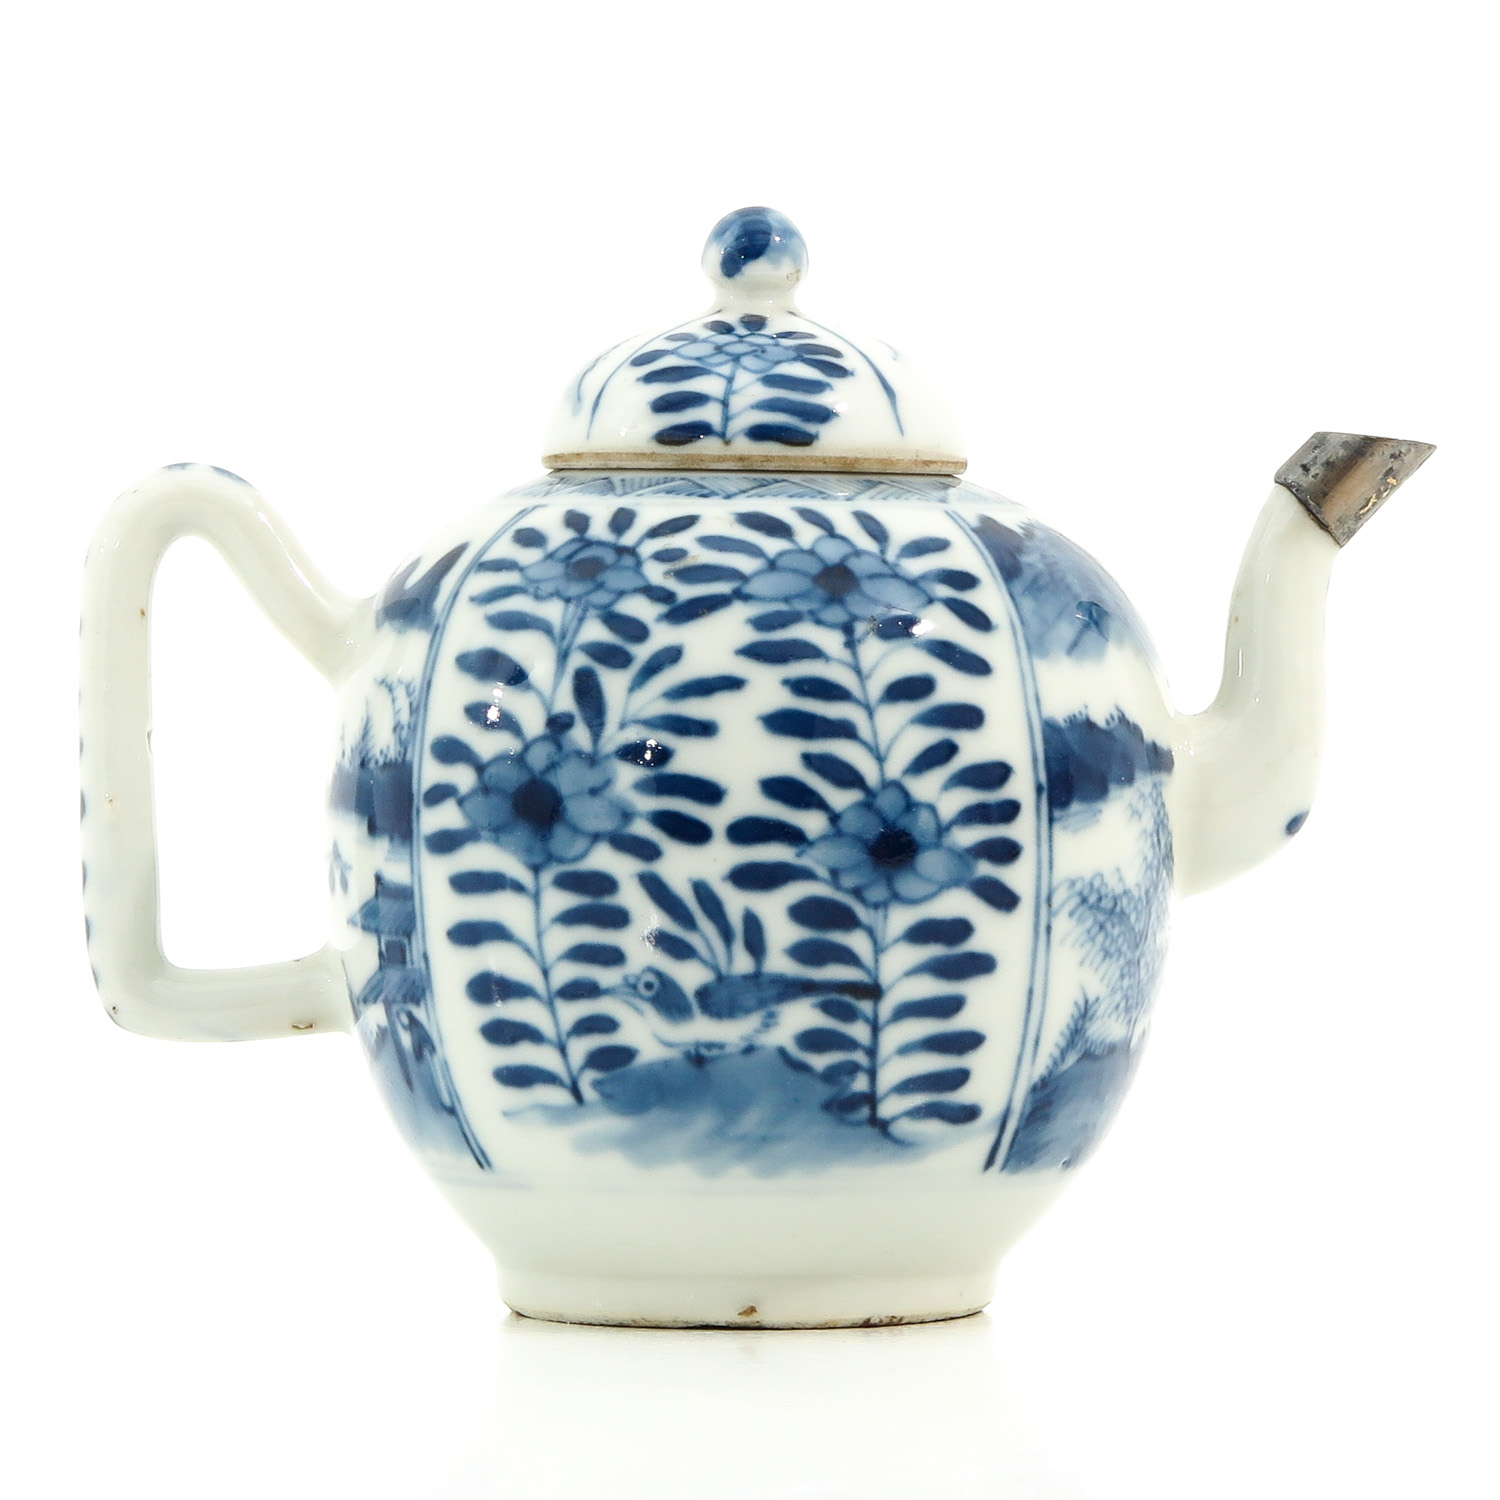 A Blue and White Teapot - Image 3 of 9